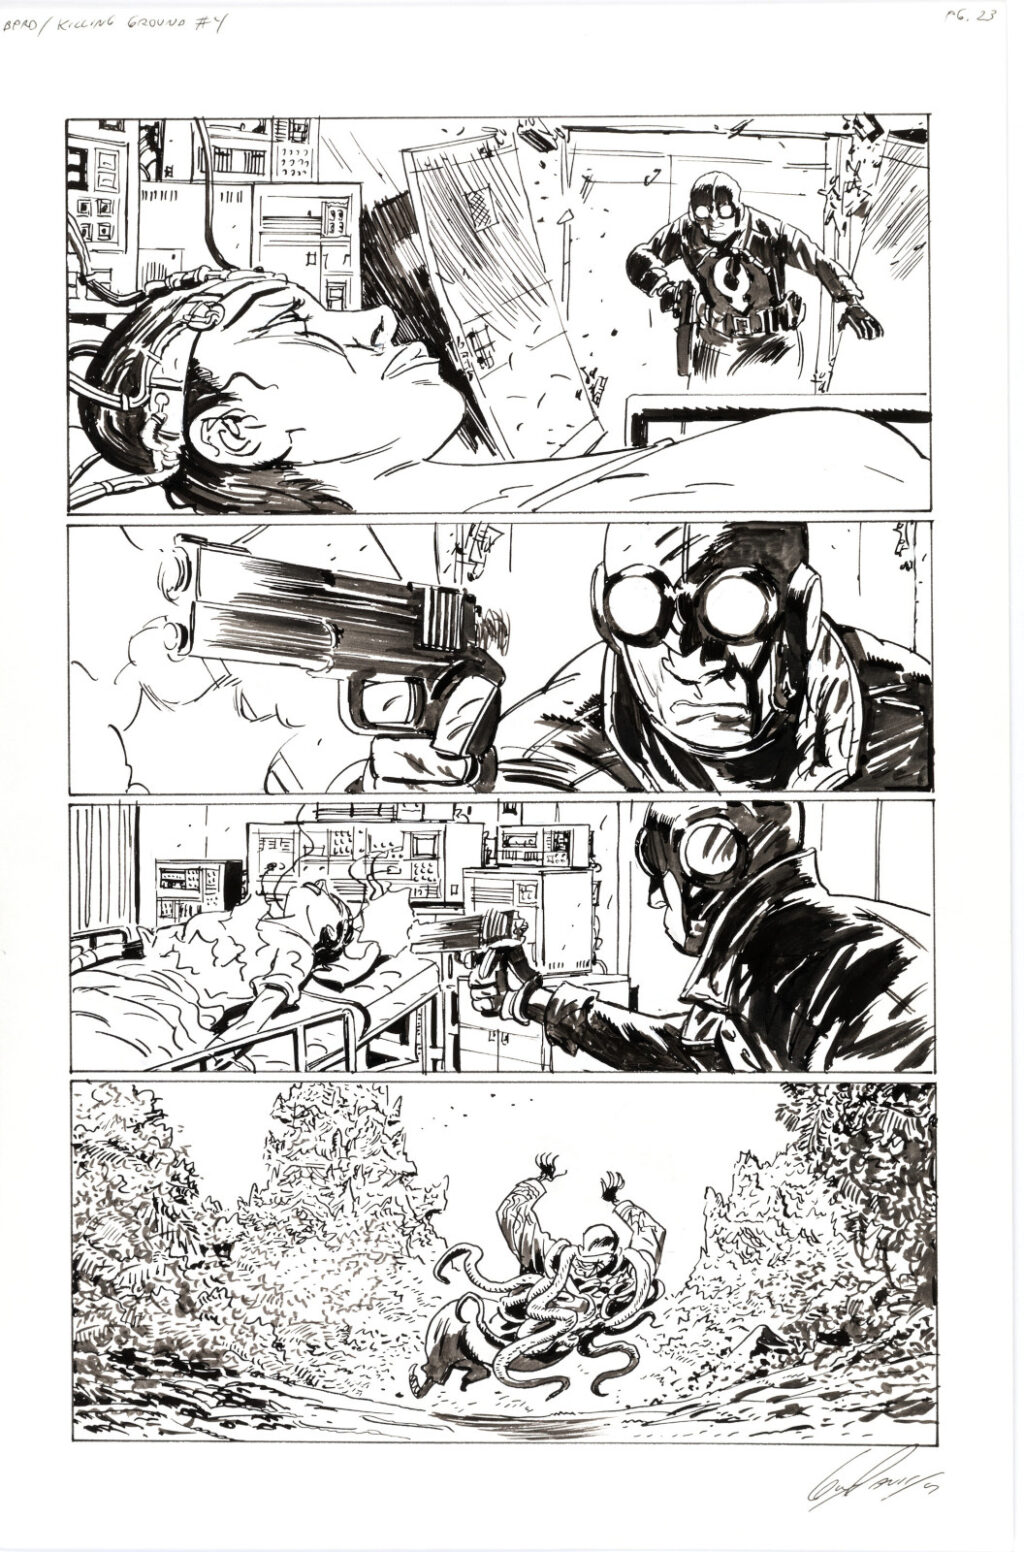 B.P.R.D. Killing Ground issue 4 page 23 by Guy Davis